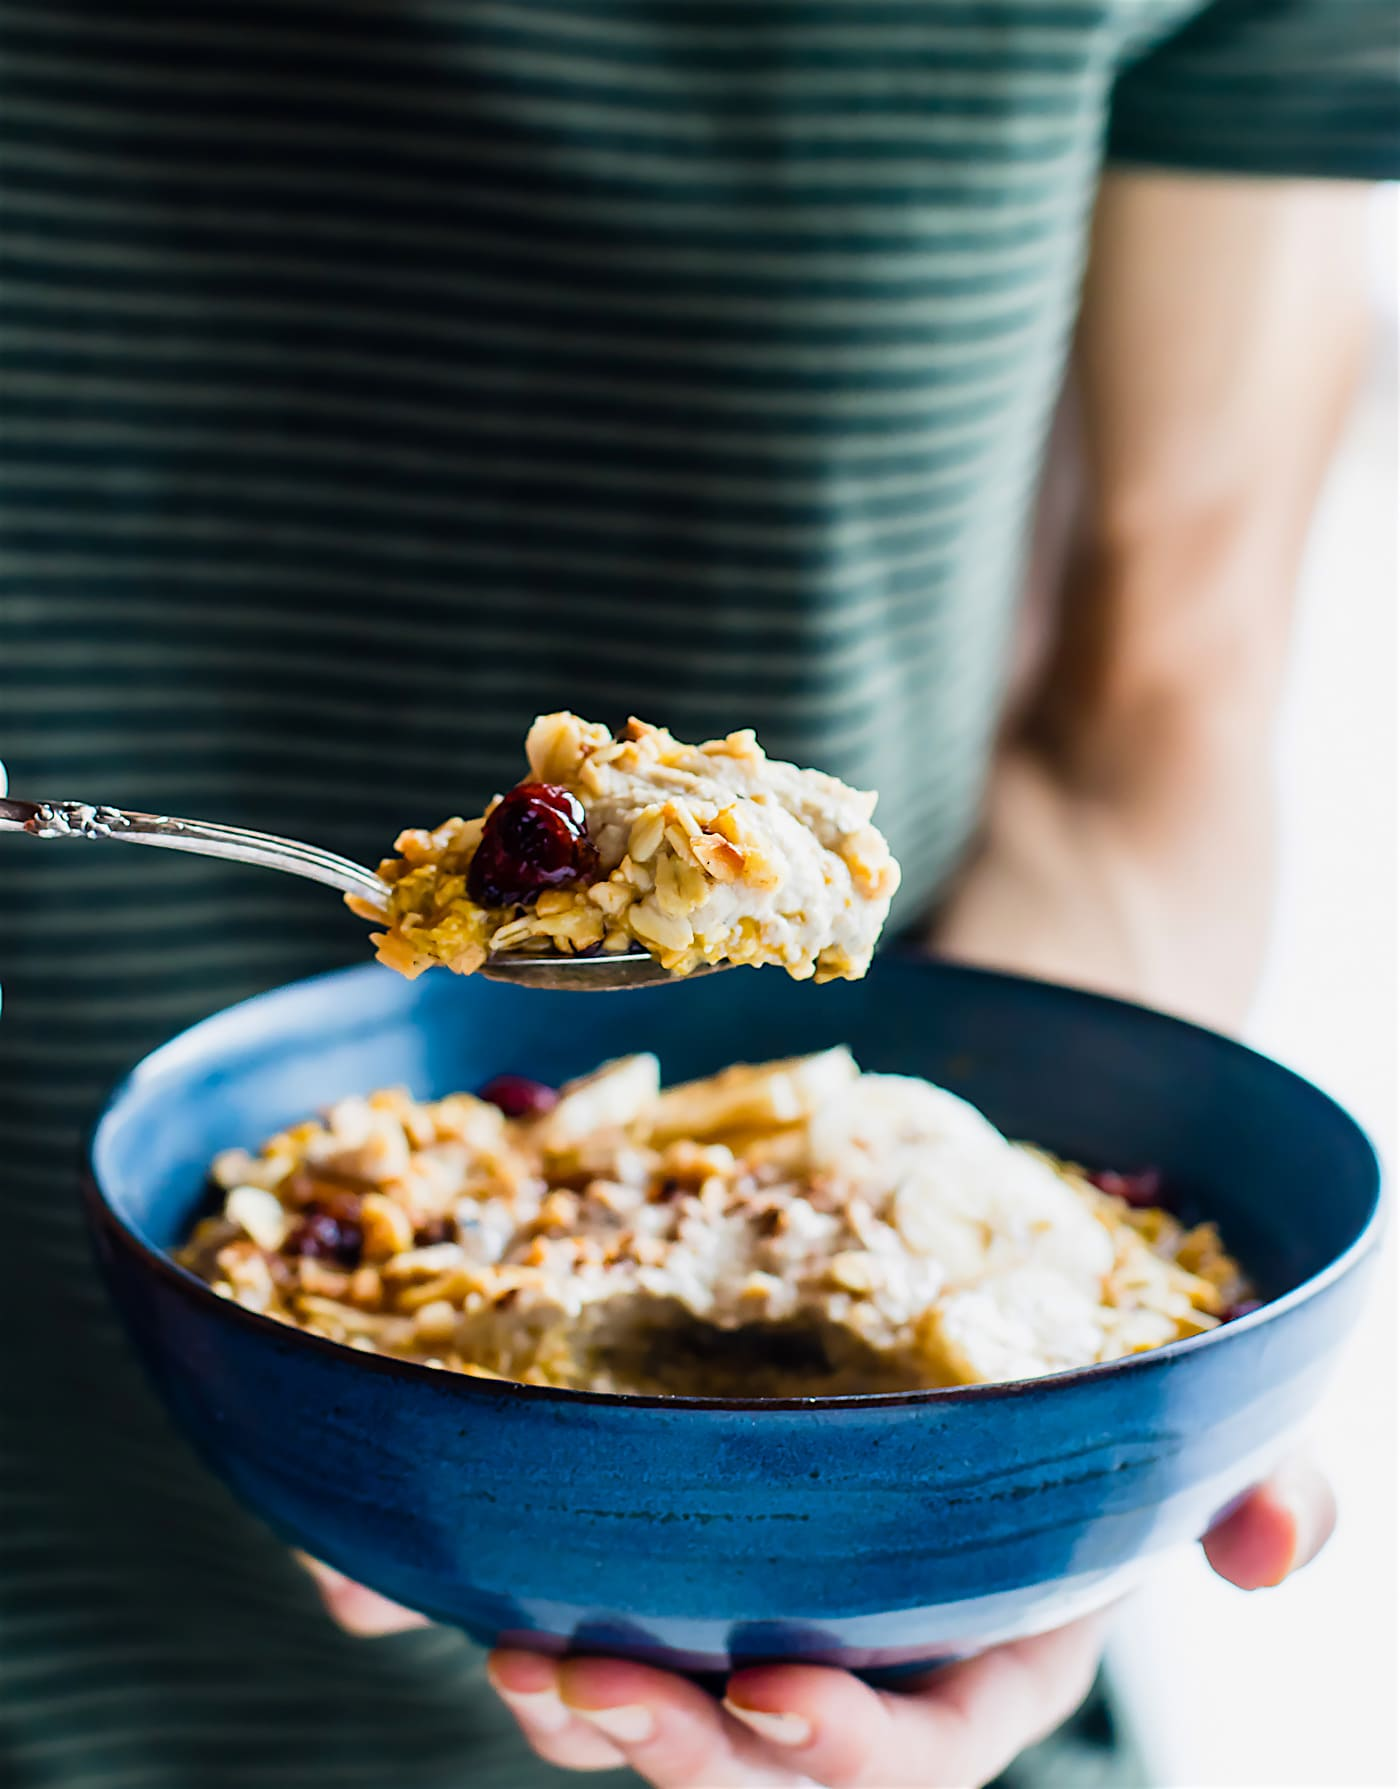 Pumpkin Overnight Oats with Cinnamon Cashew Cream and cranberry nut topping! A vegan pumpkin overnight oats recipe for Fall breakfasts. Gluten free & easy.